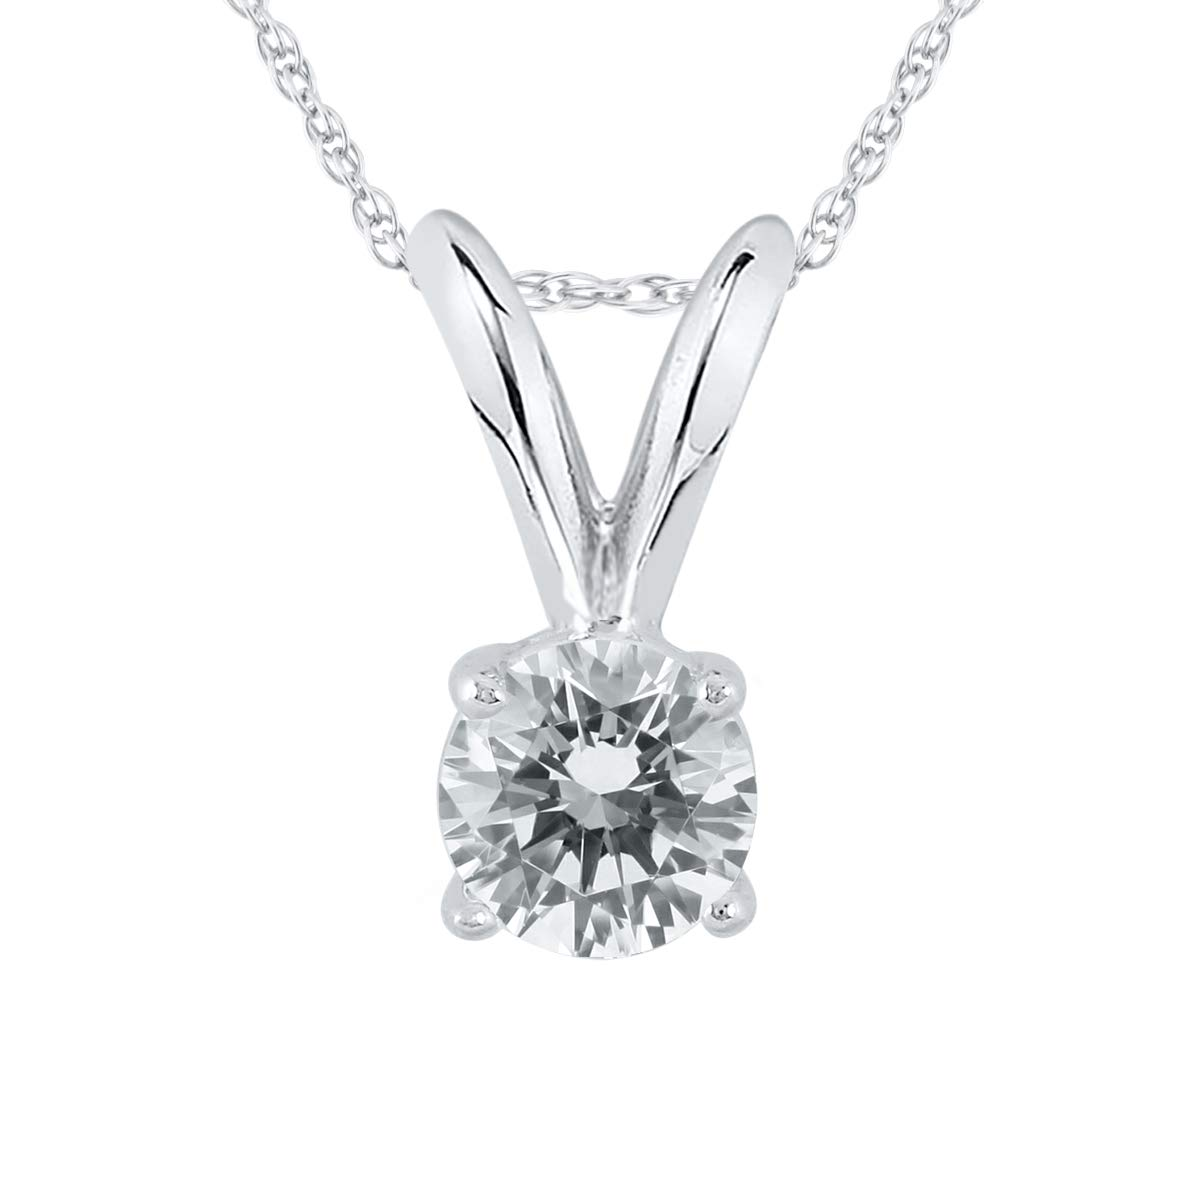 AGS Certified 1/4 Carat Round Diamond Solitaire Pendant in 14K White Gold (K-L Color, I2-I3 Clarity)